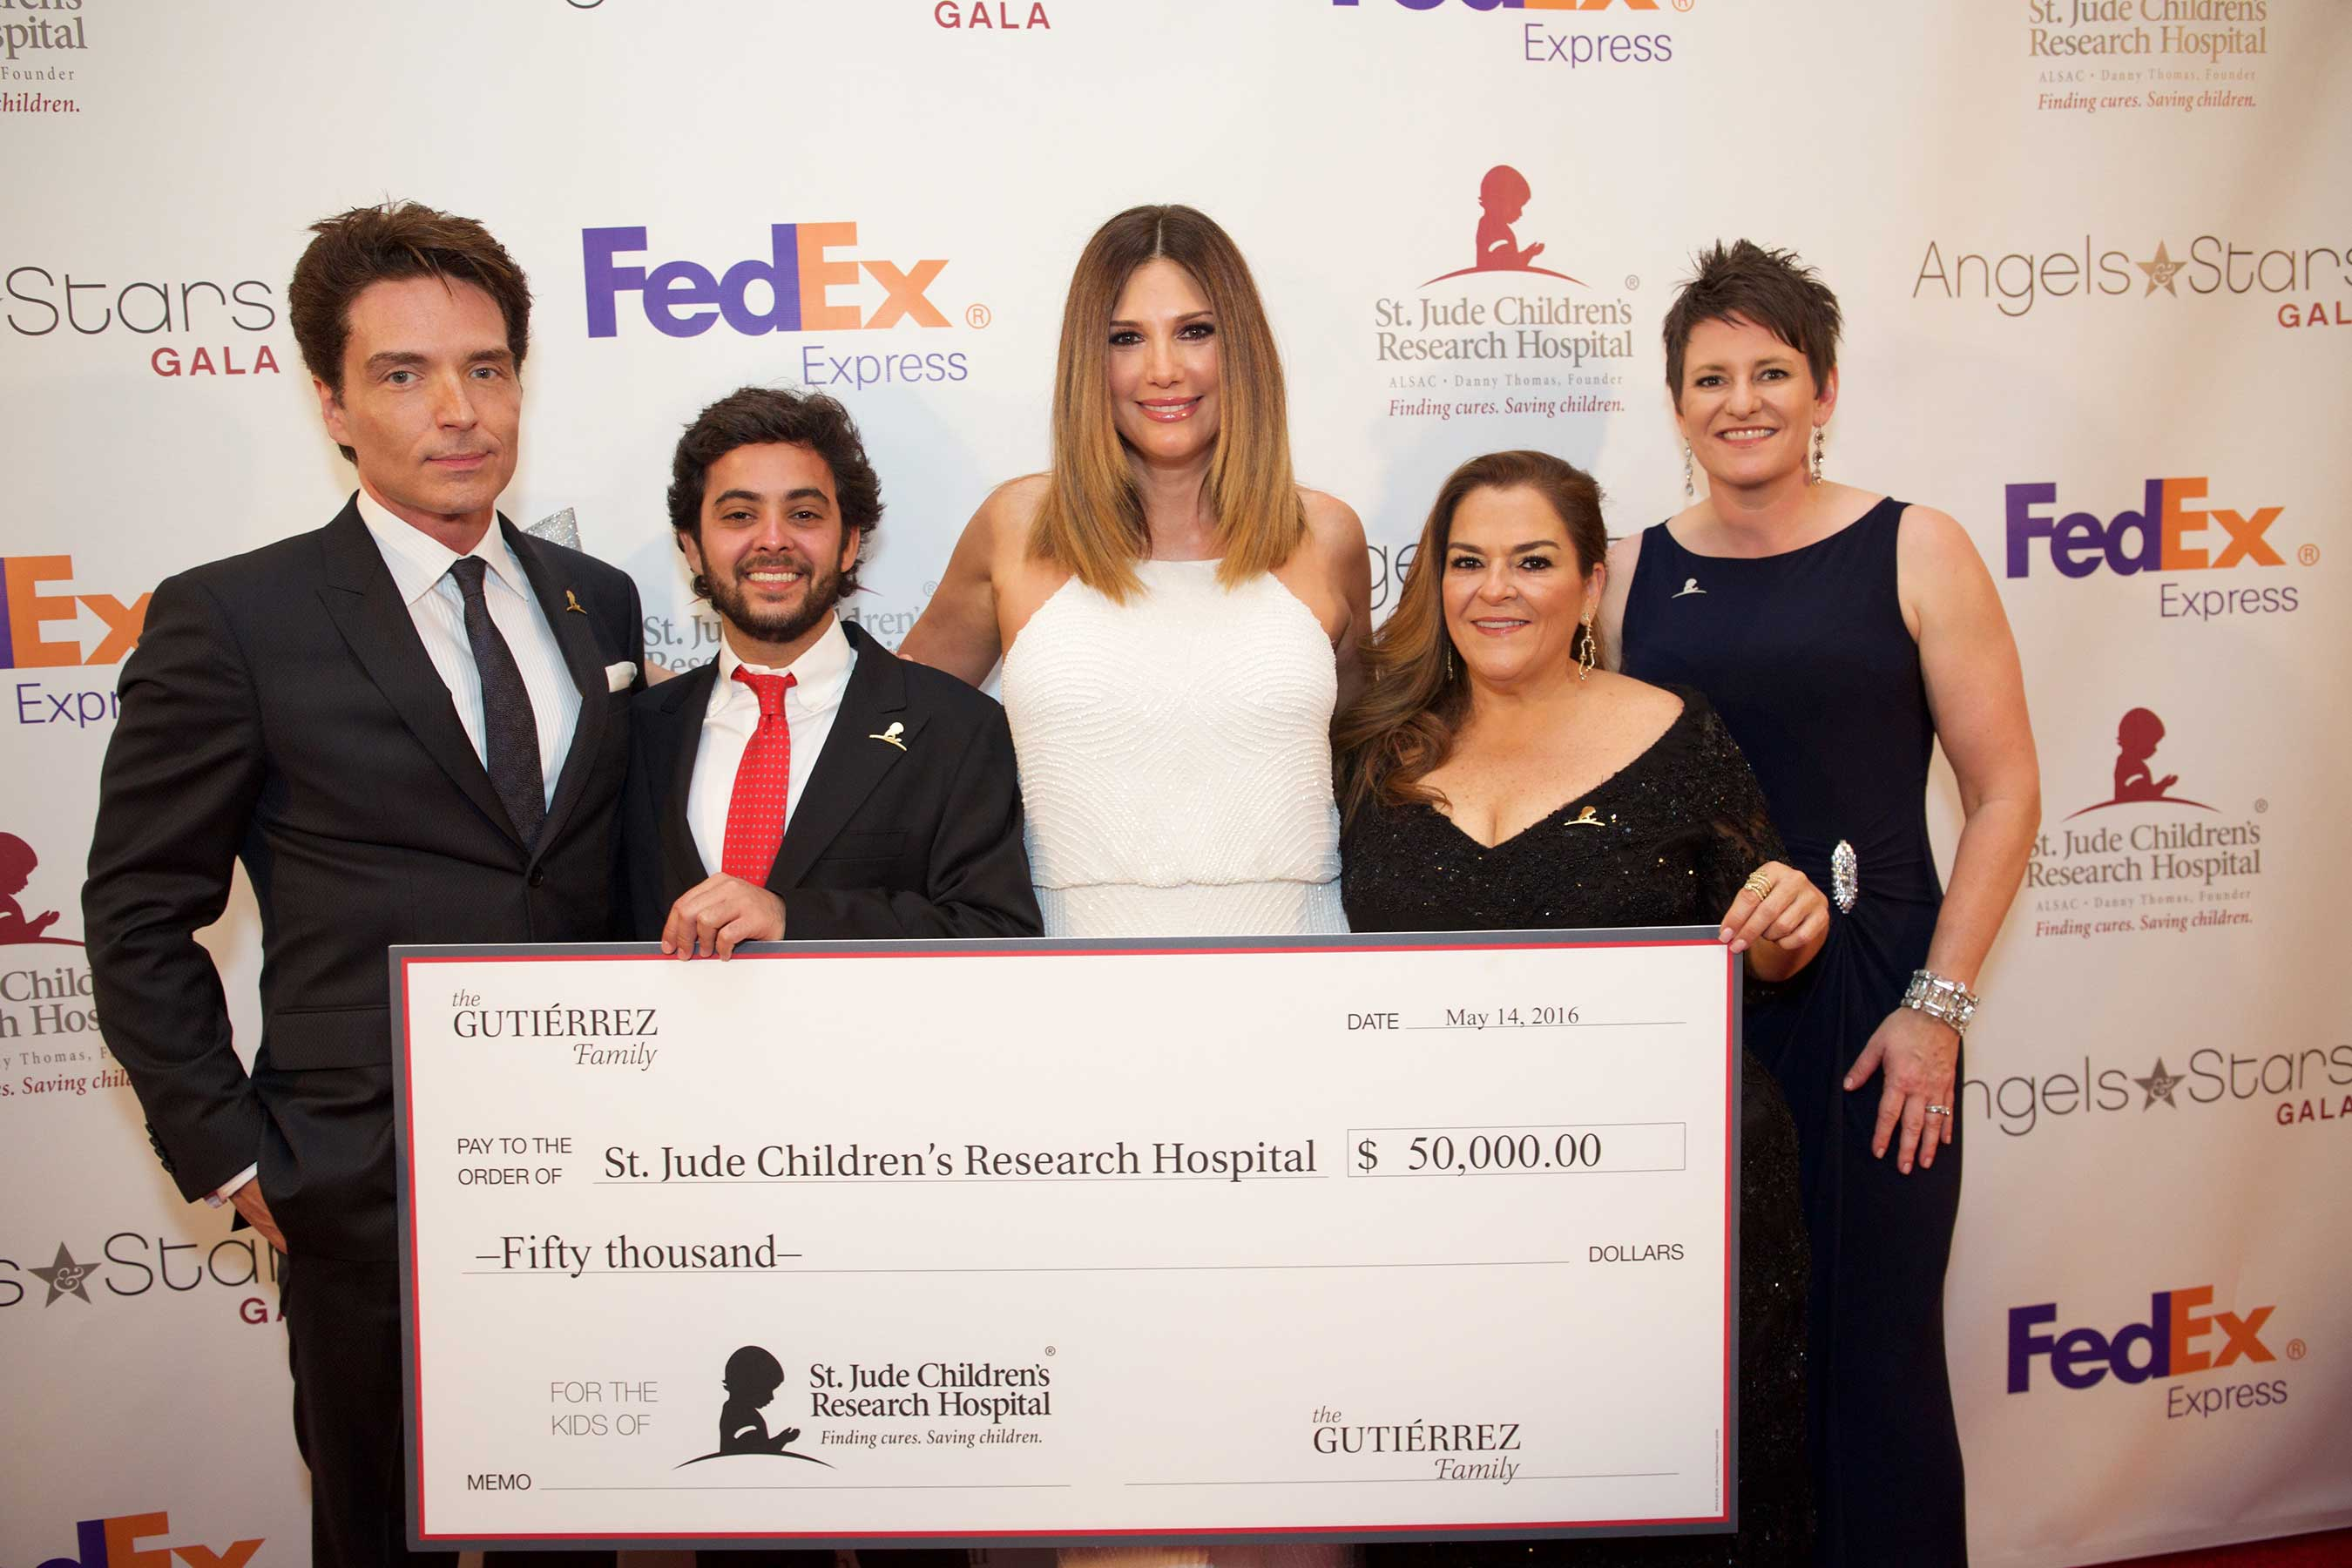 Richard Marx, St. Jude patient Stephan, Gala honoree Patty Gutierrez, ALSAC/St. Jude Children's Research Hospital's Chief Marketing Officer Emily Callahan